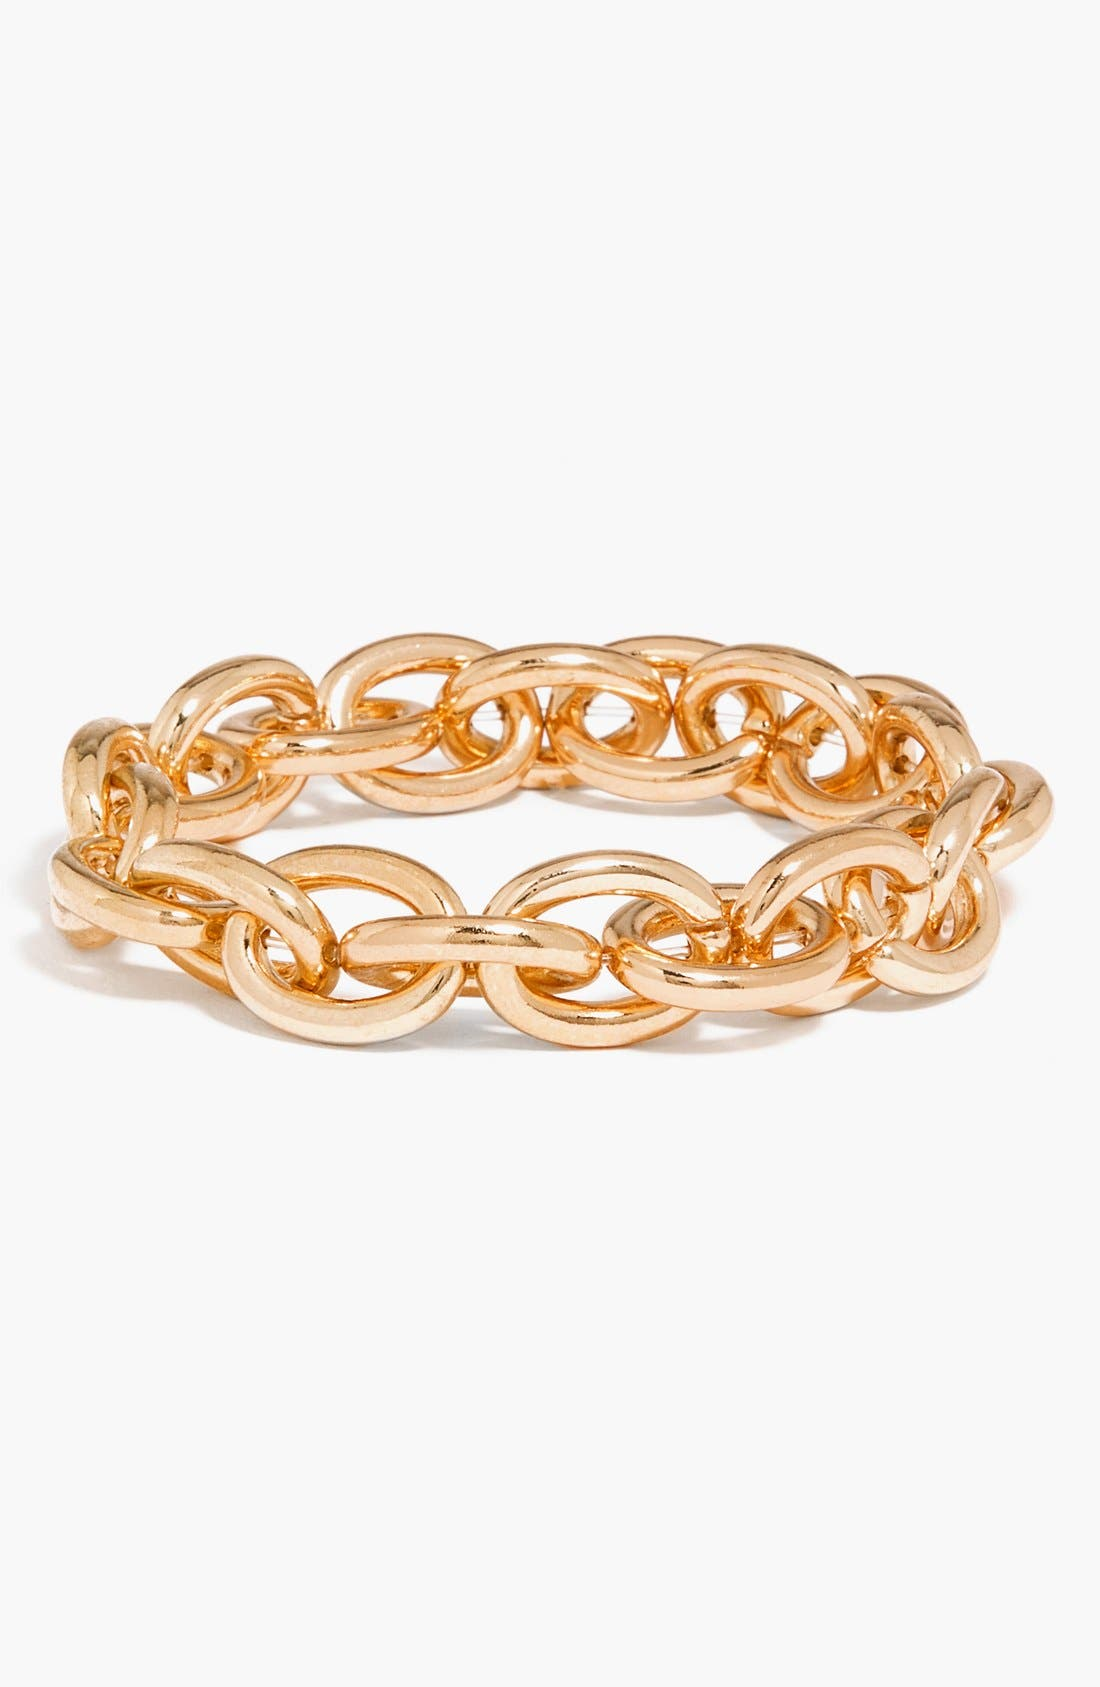 Alternate Image 1 Selected - BaubleBar Chain Link Stretch Bracelet